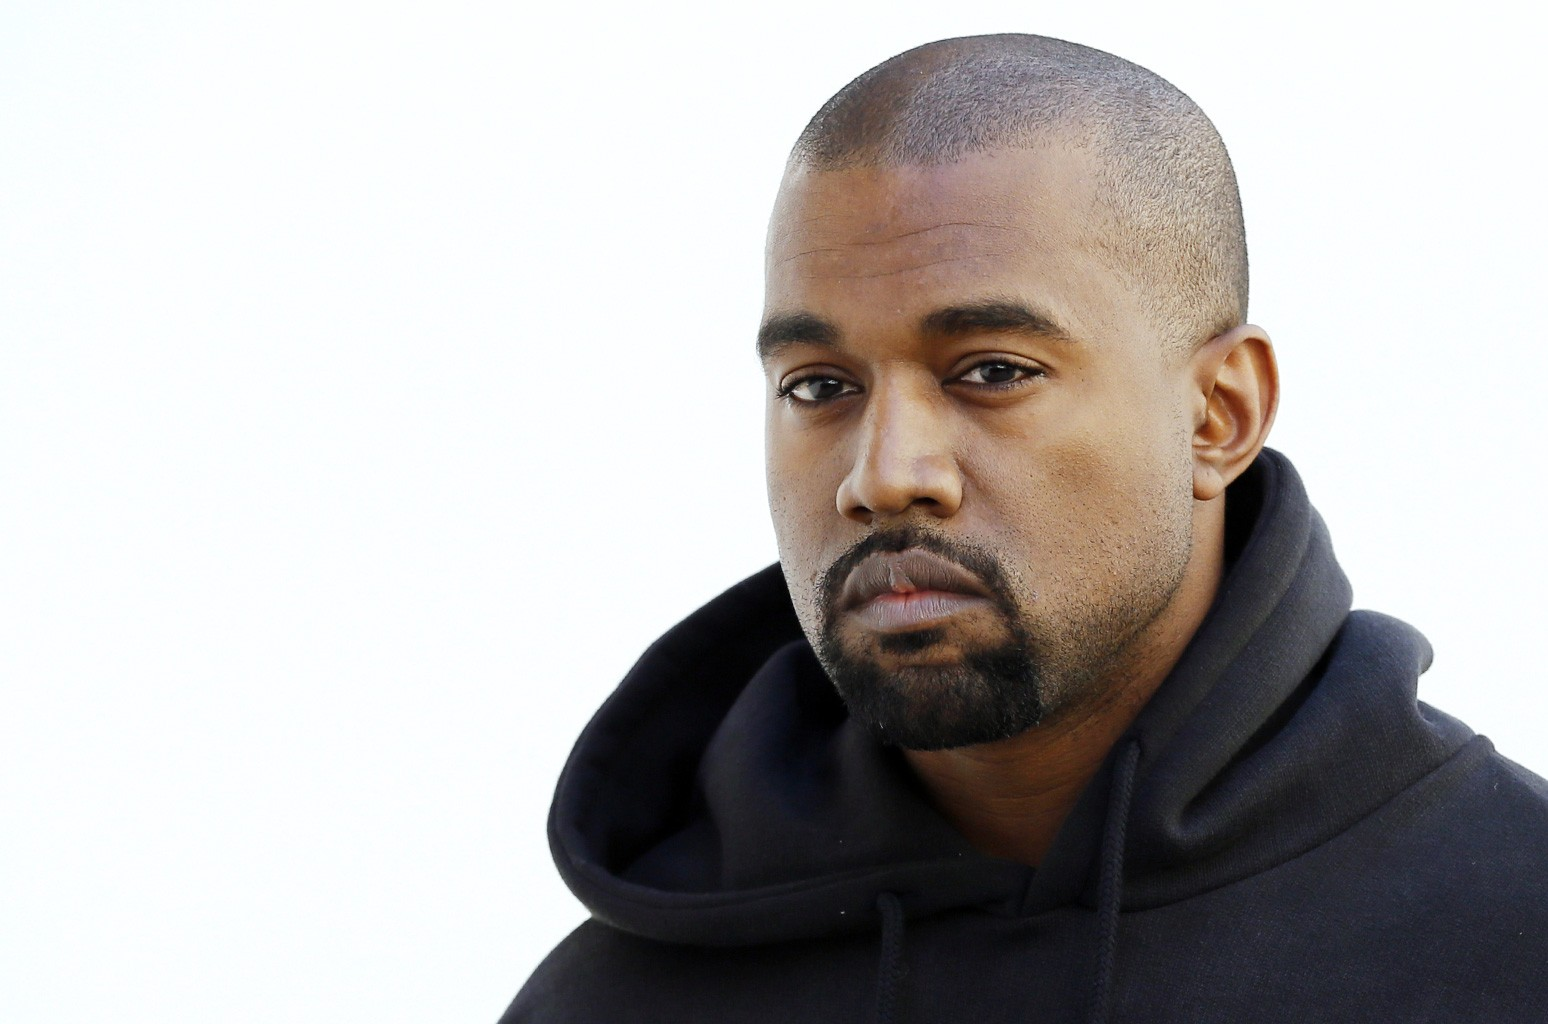 Kanye West poses before Christian Dior 2015-2016 fall/winter ready-to-wear collection fashion show on March 6, 2015 in Paris.